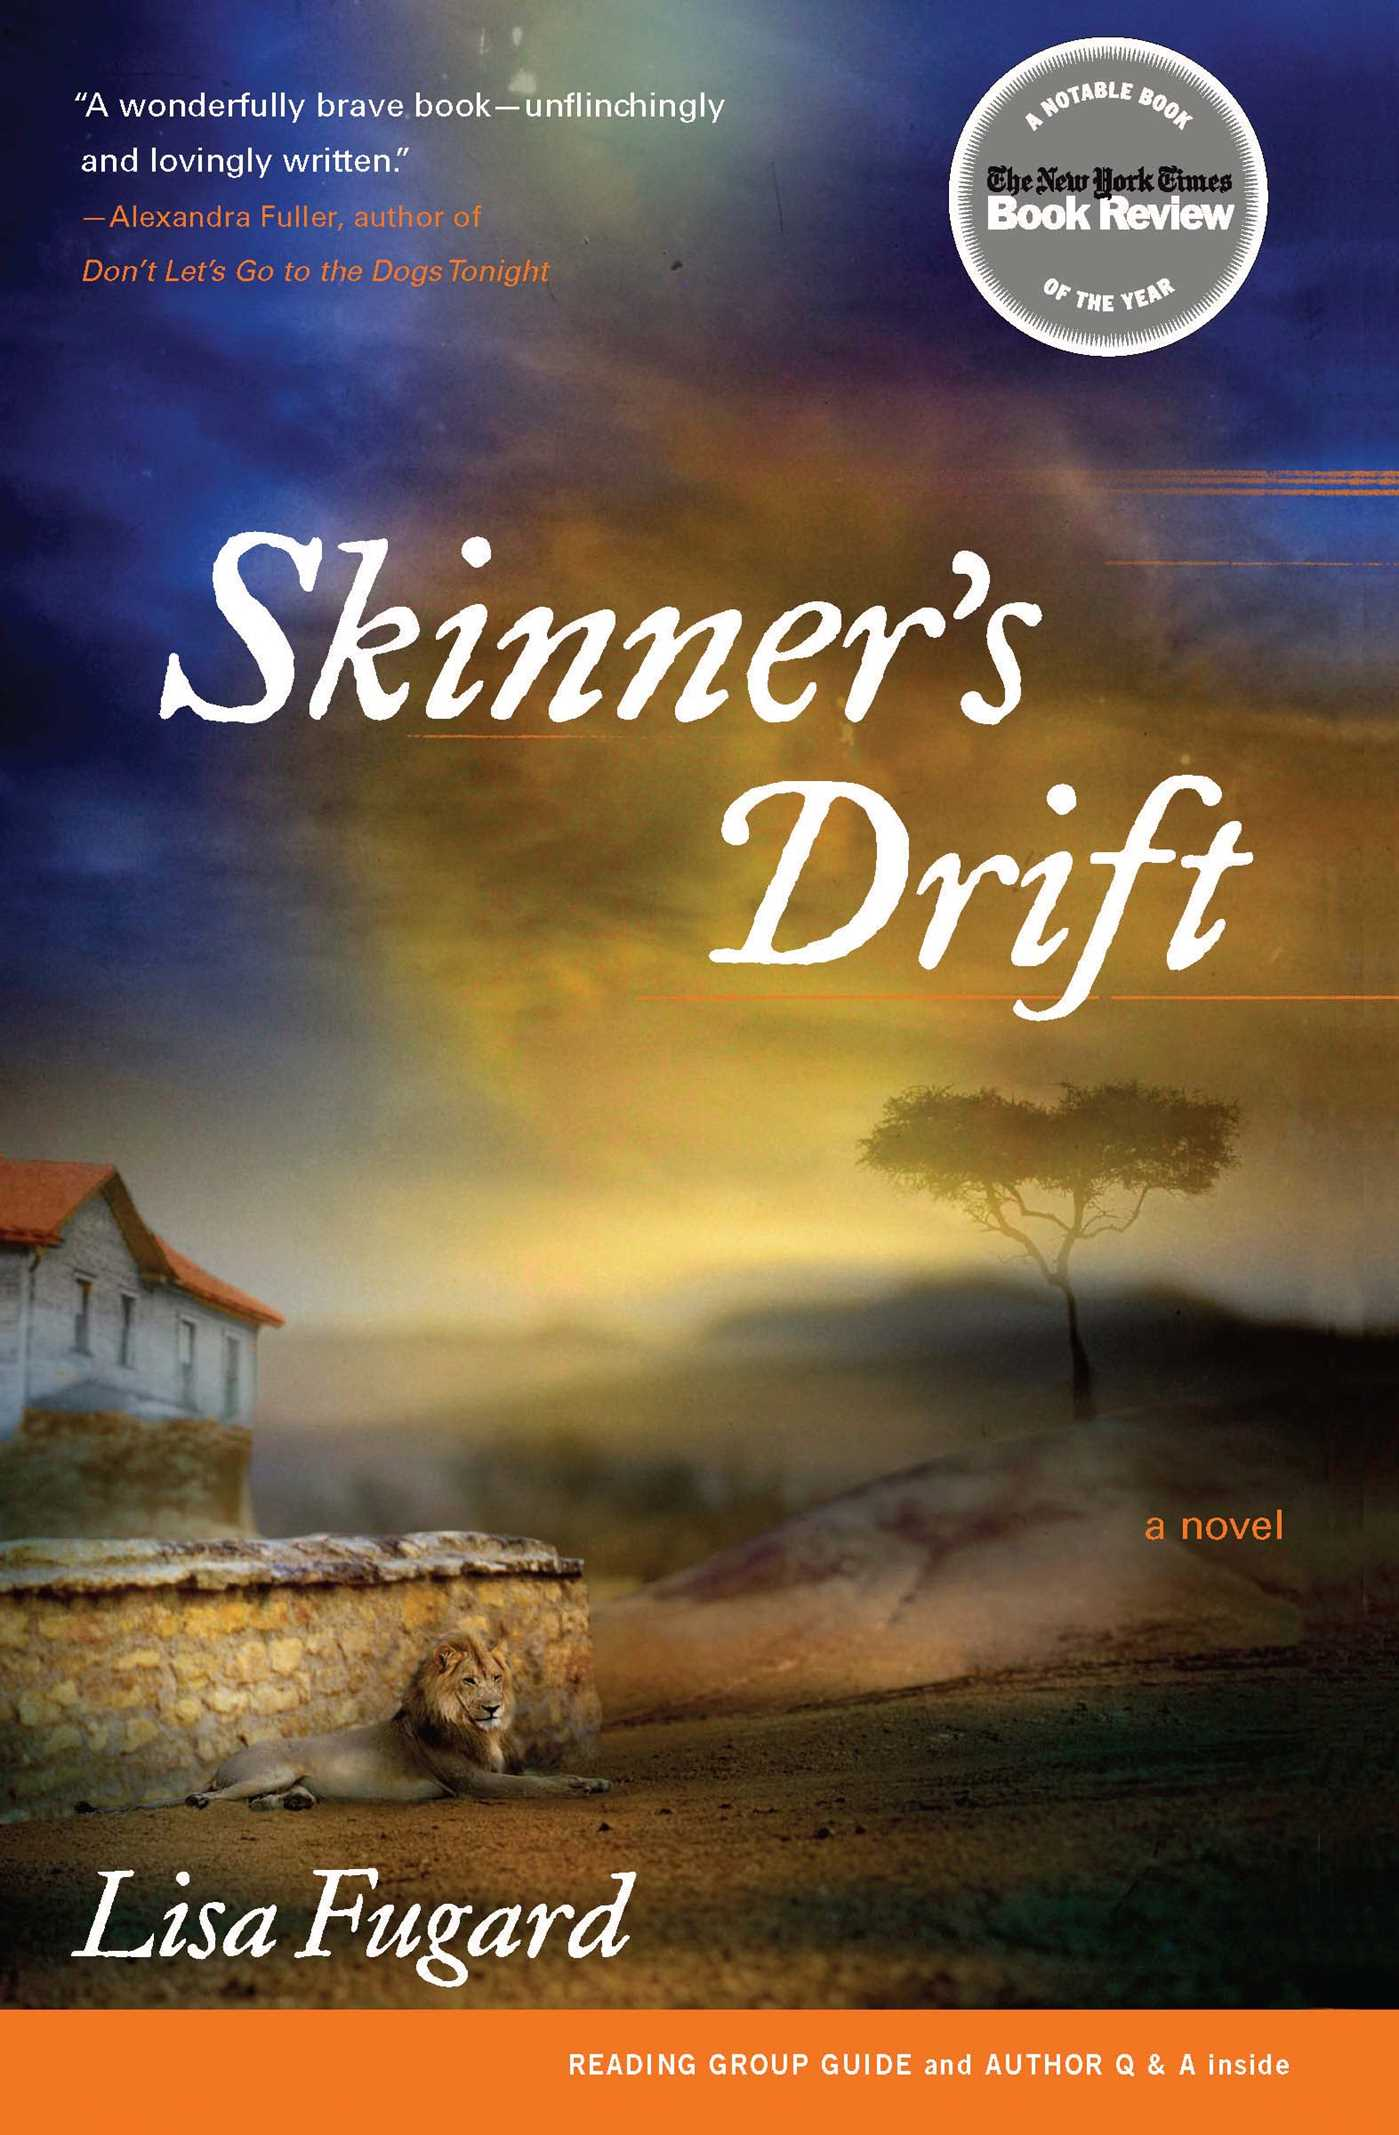 Skinners-drift-9780743273336_hr